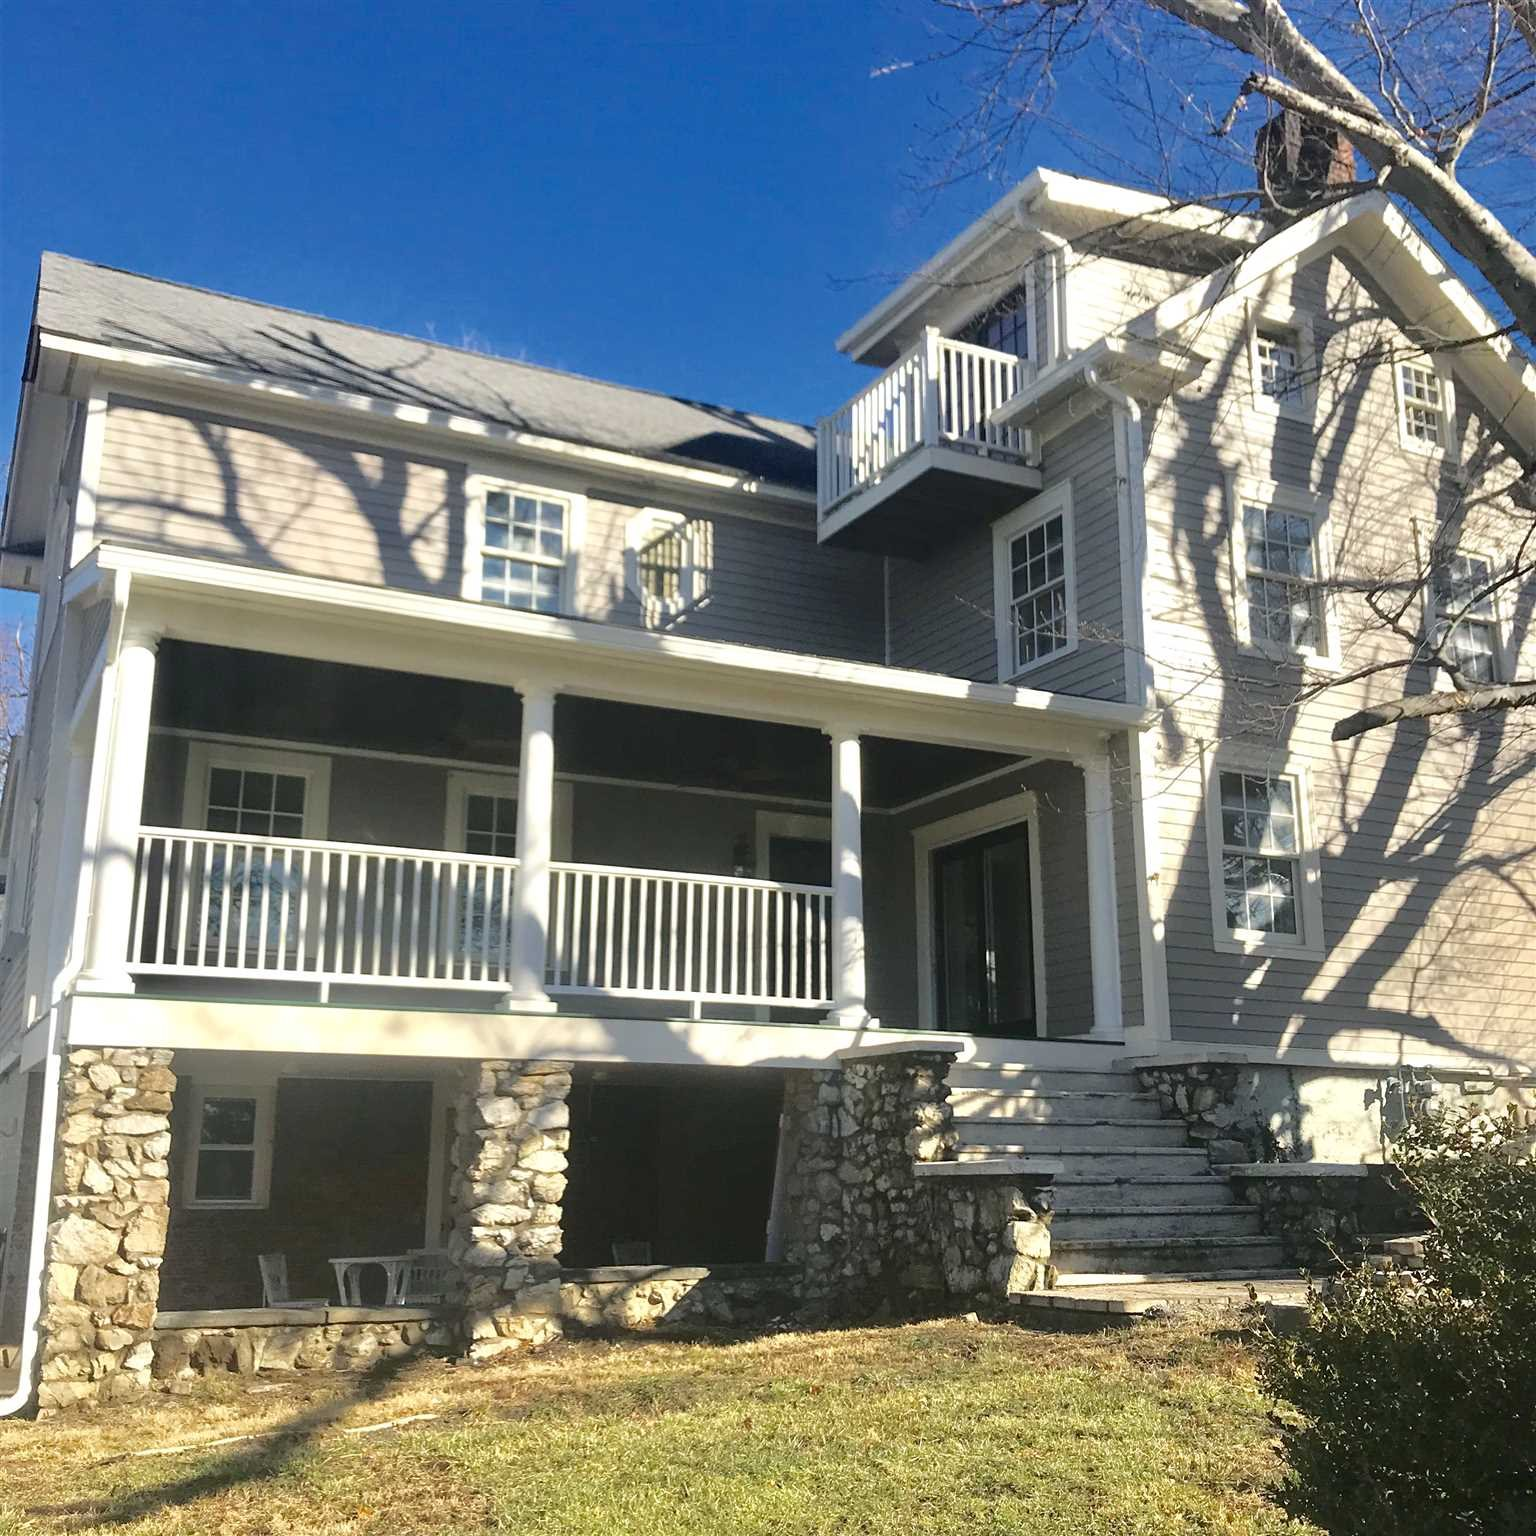 Additional photo for property listing at 119 HOWLAND Avenue 119 HOWLAND Avenue Beacon, New York 12508 United States